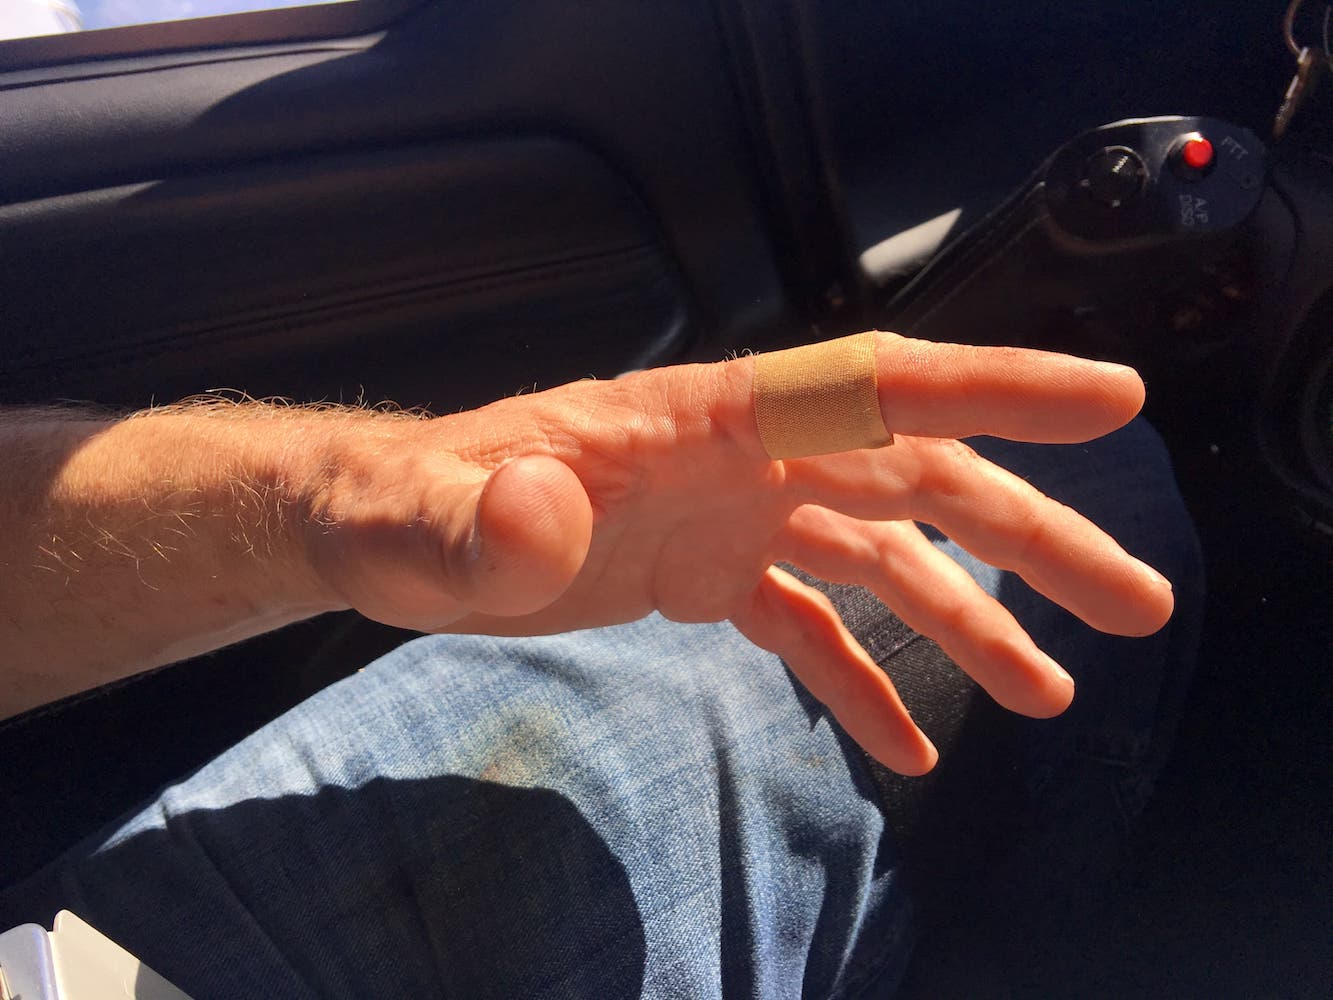 B – Bleeding at 17k feet – there is more to this story